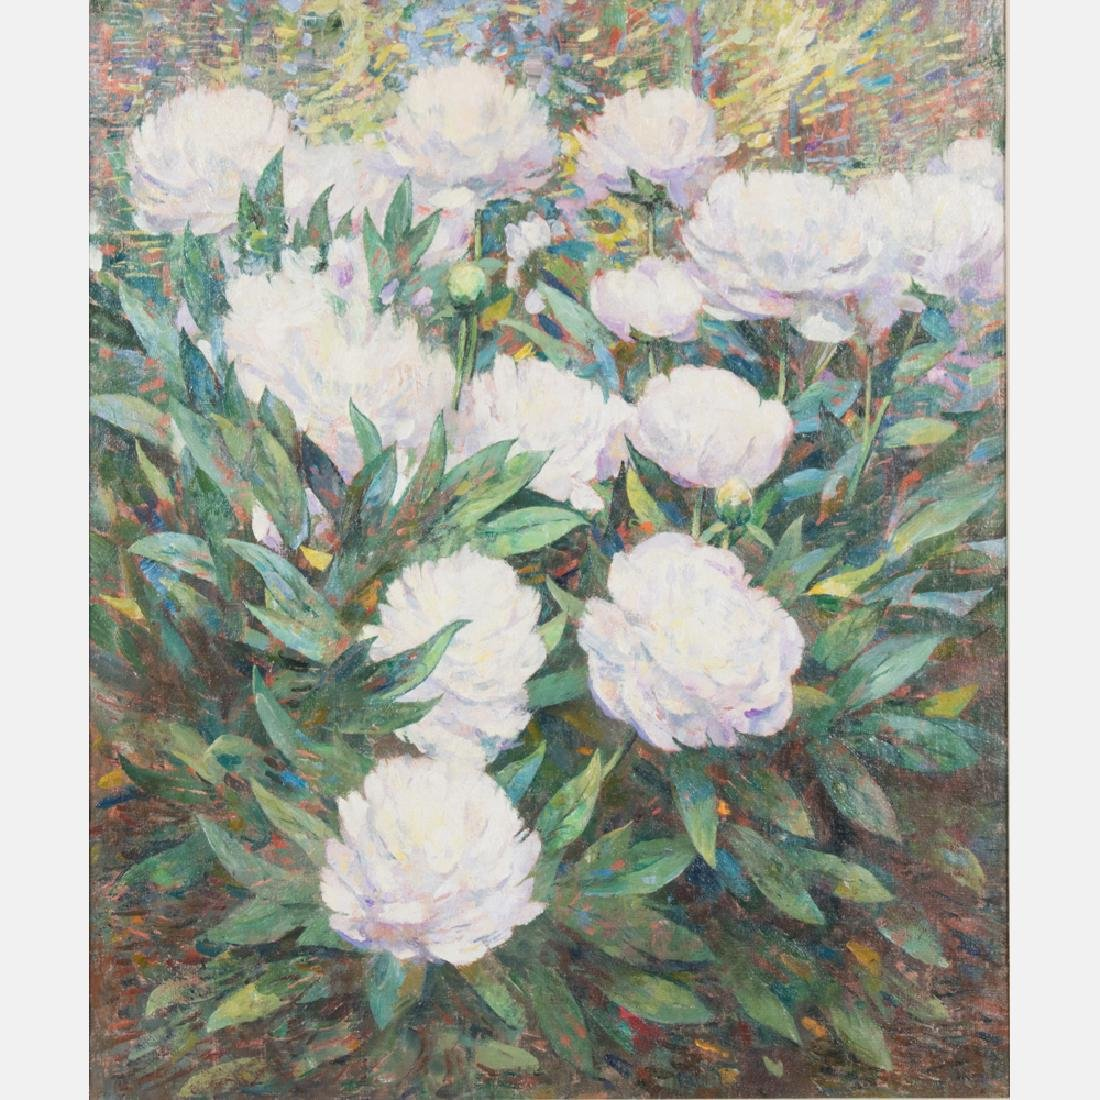 Dines Carlsen (1901-1966) Peonies, Oil on canvas,